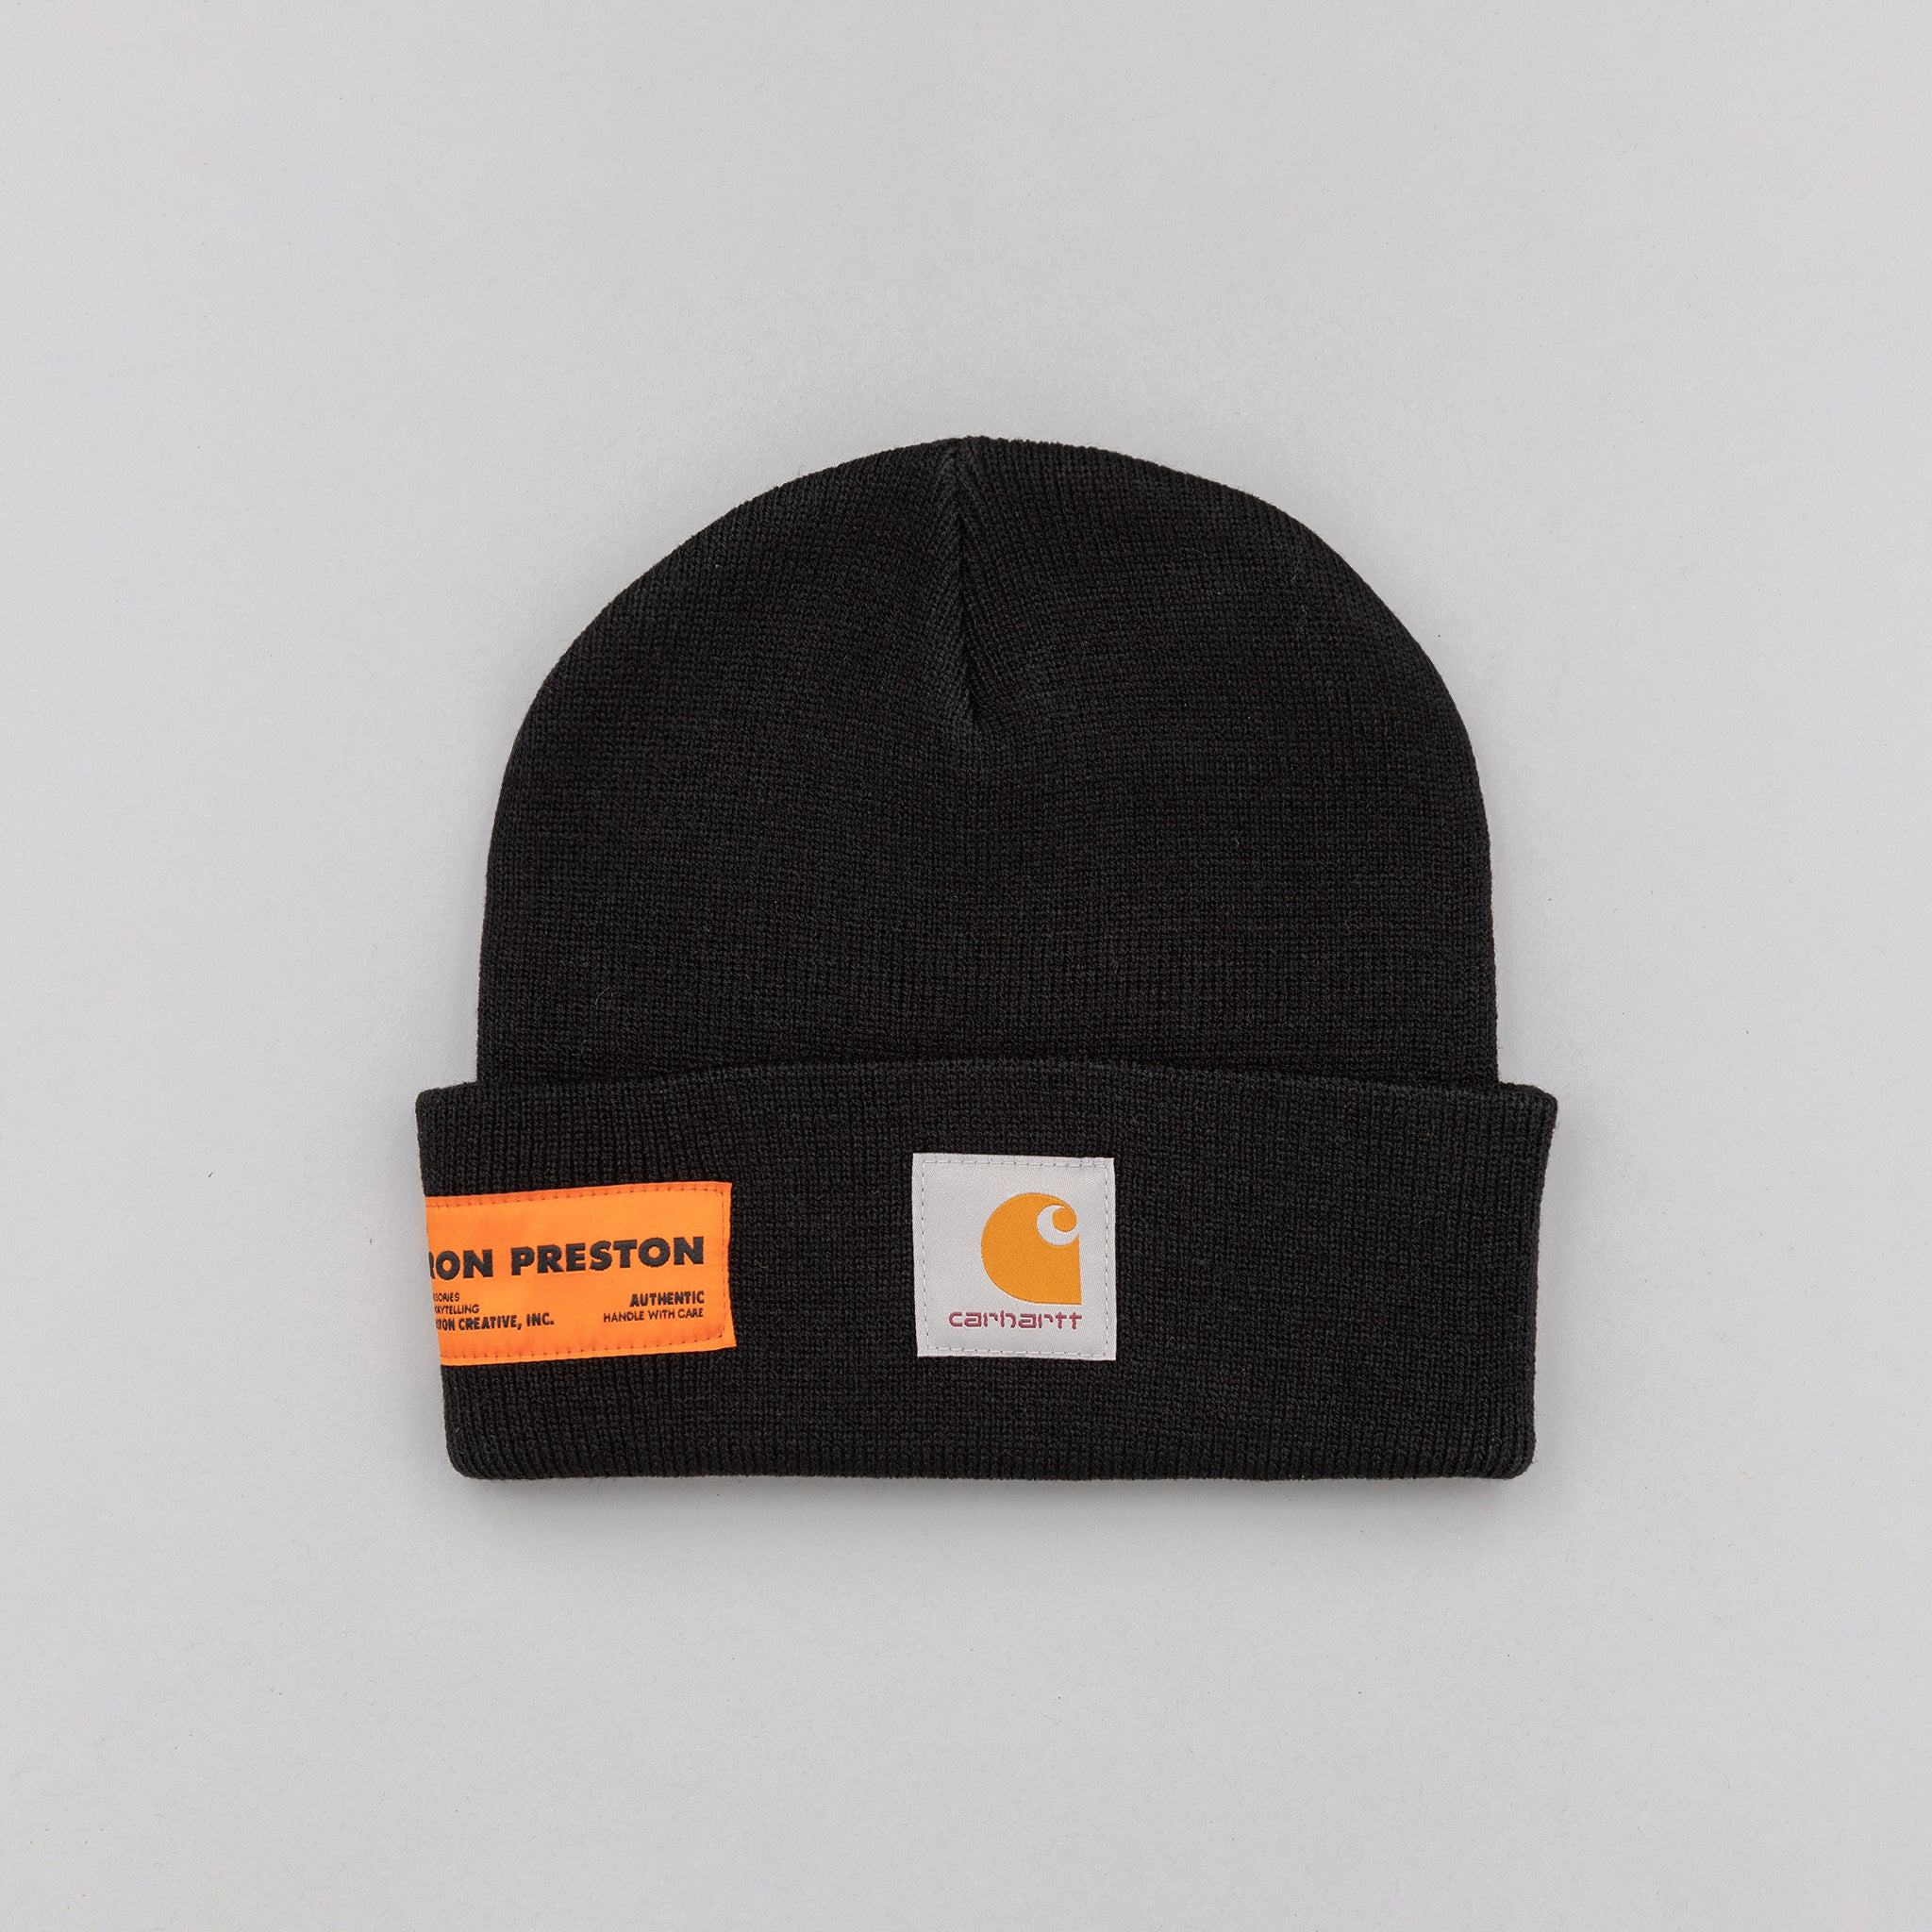 Heron Preston x Carhartt Beanie in Black Crystal  3010bd62ab2